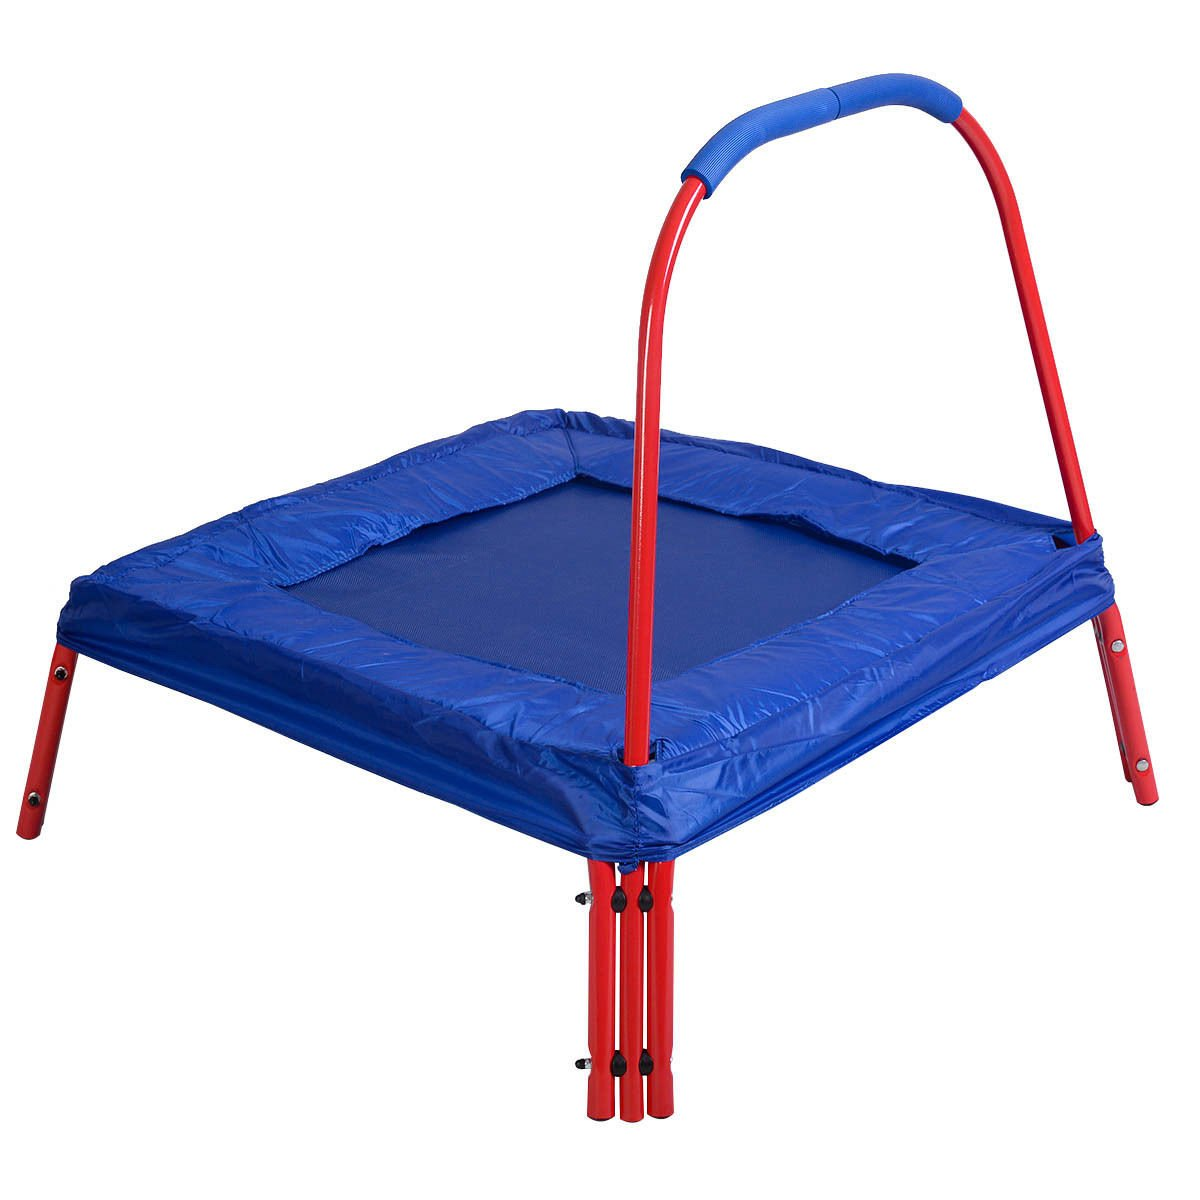 MyronSalesStore Blue Square Jumping Trampoline 3' x 3' FT Kids w/Handle Bar and Safety Pad by MyronSalesStore